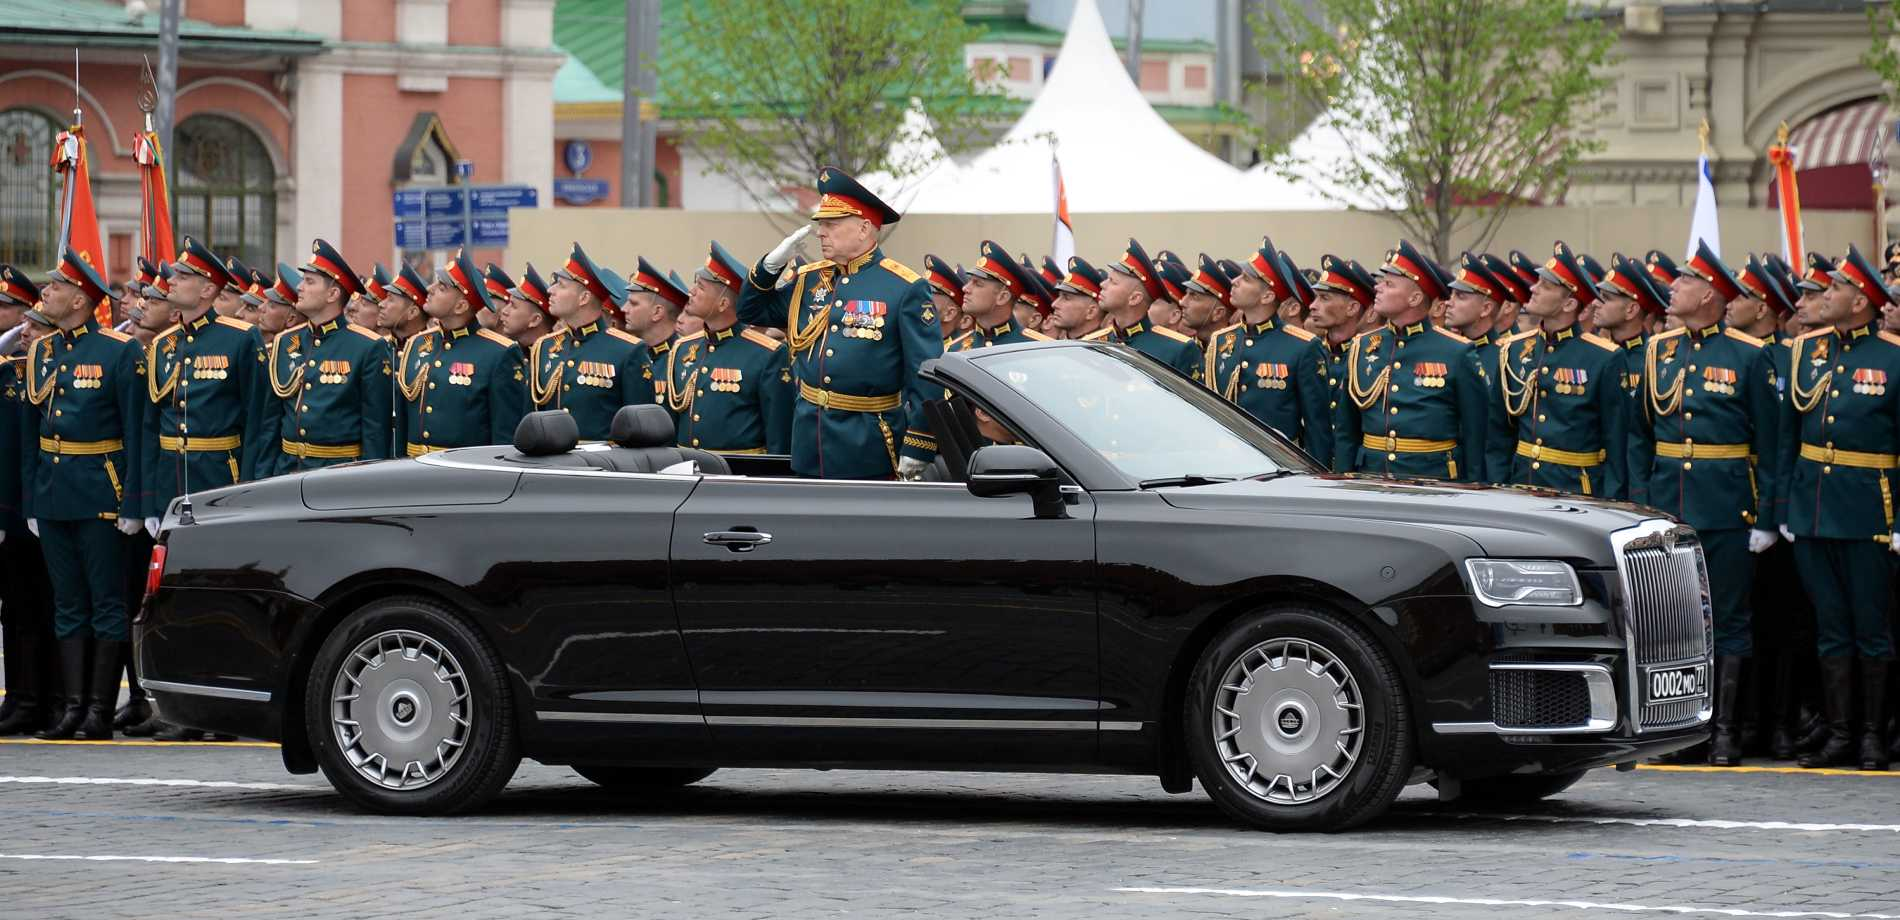 army general in military parade